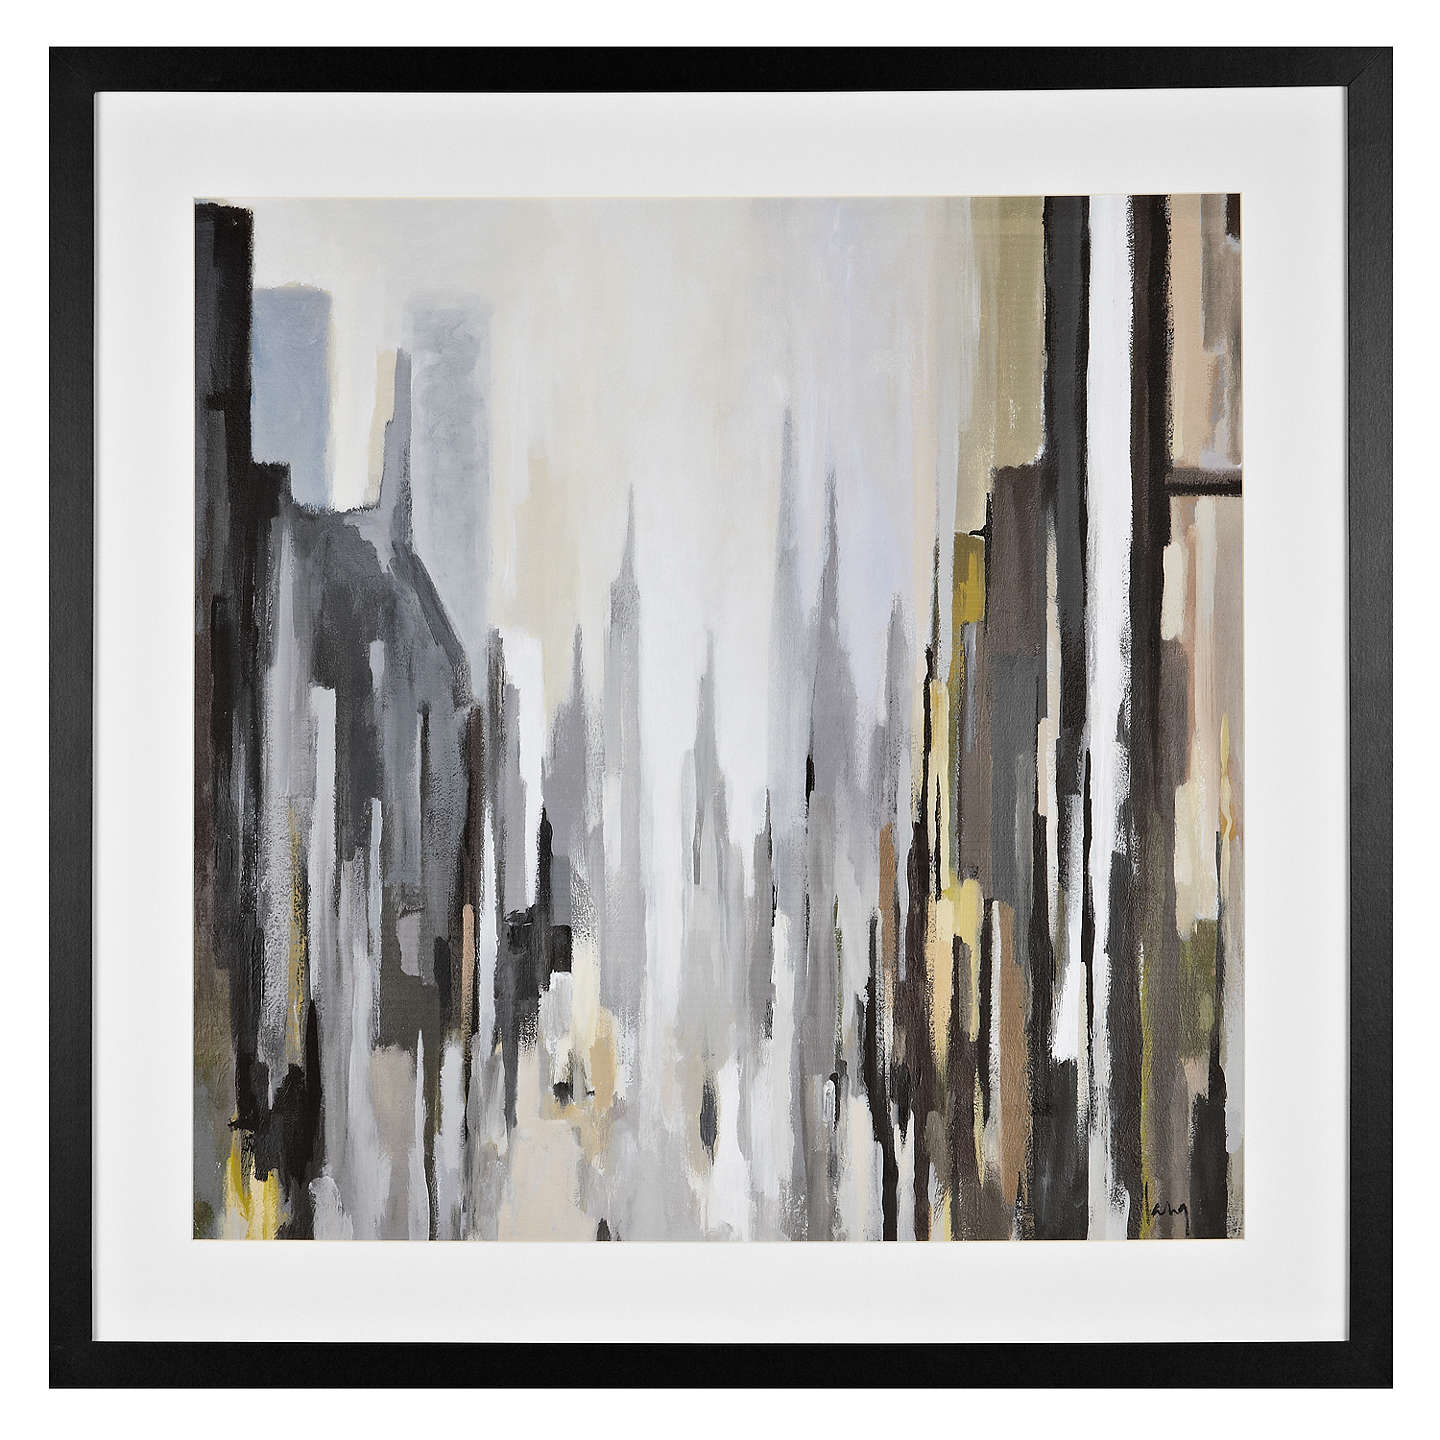 BuyGregory Lang - Cathedral Neutral Framed Print , 86 x 86cm Online at johnlewis.com